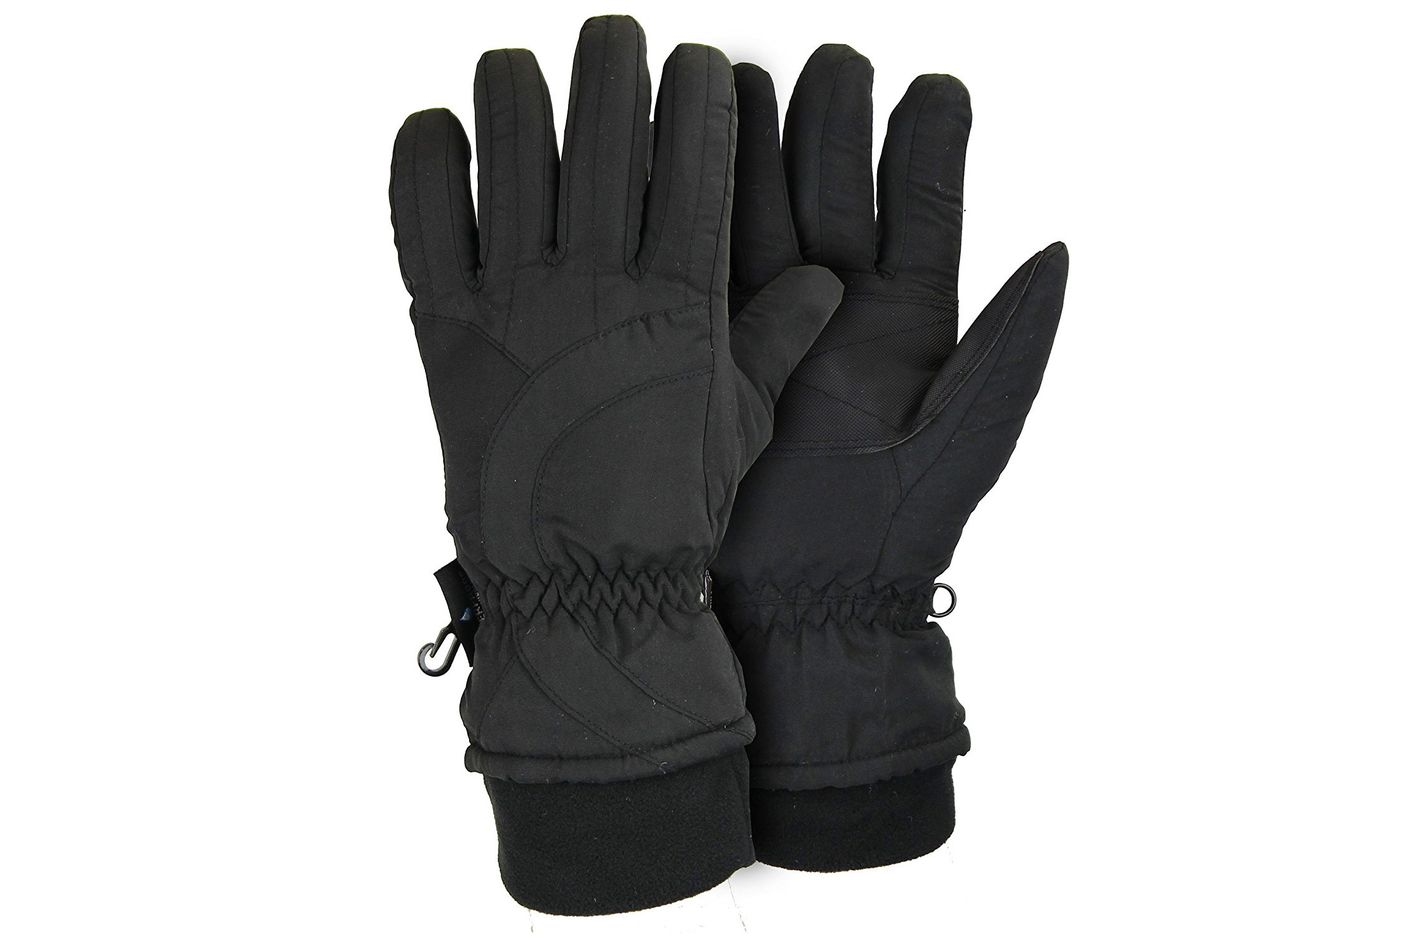 Women's Thinsulate Lined Waterproof Microfiber Winter Ski Gloves